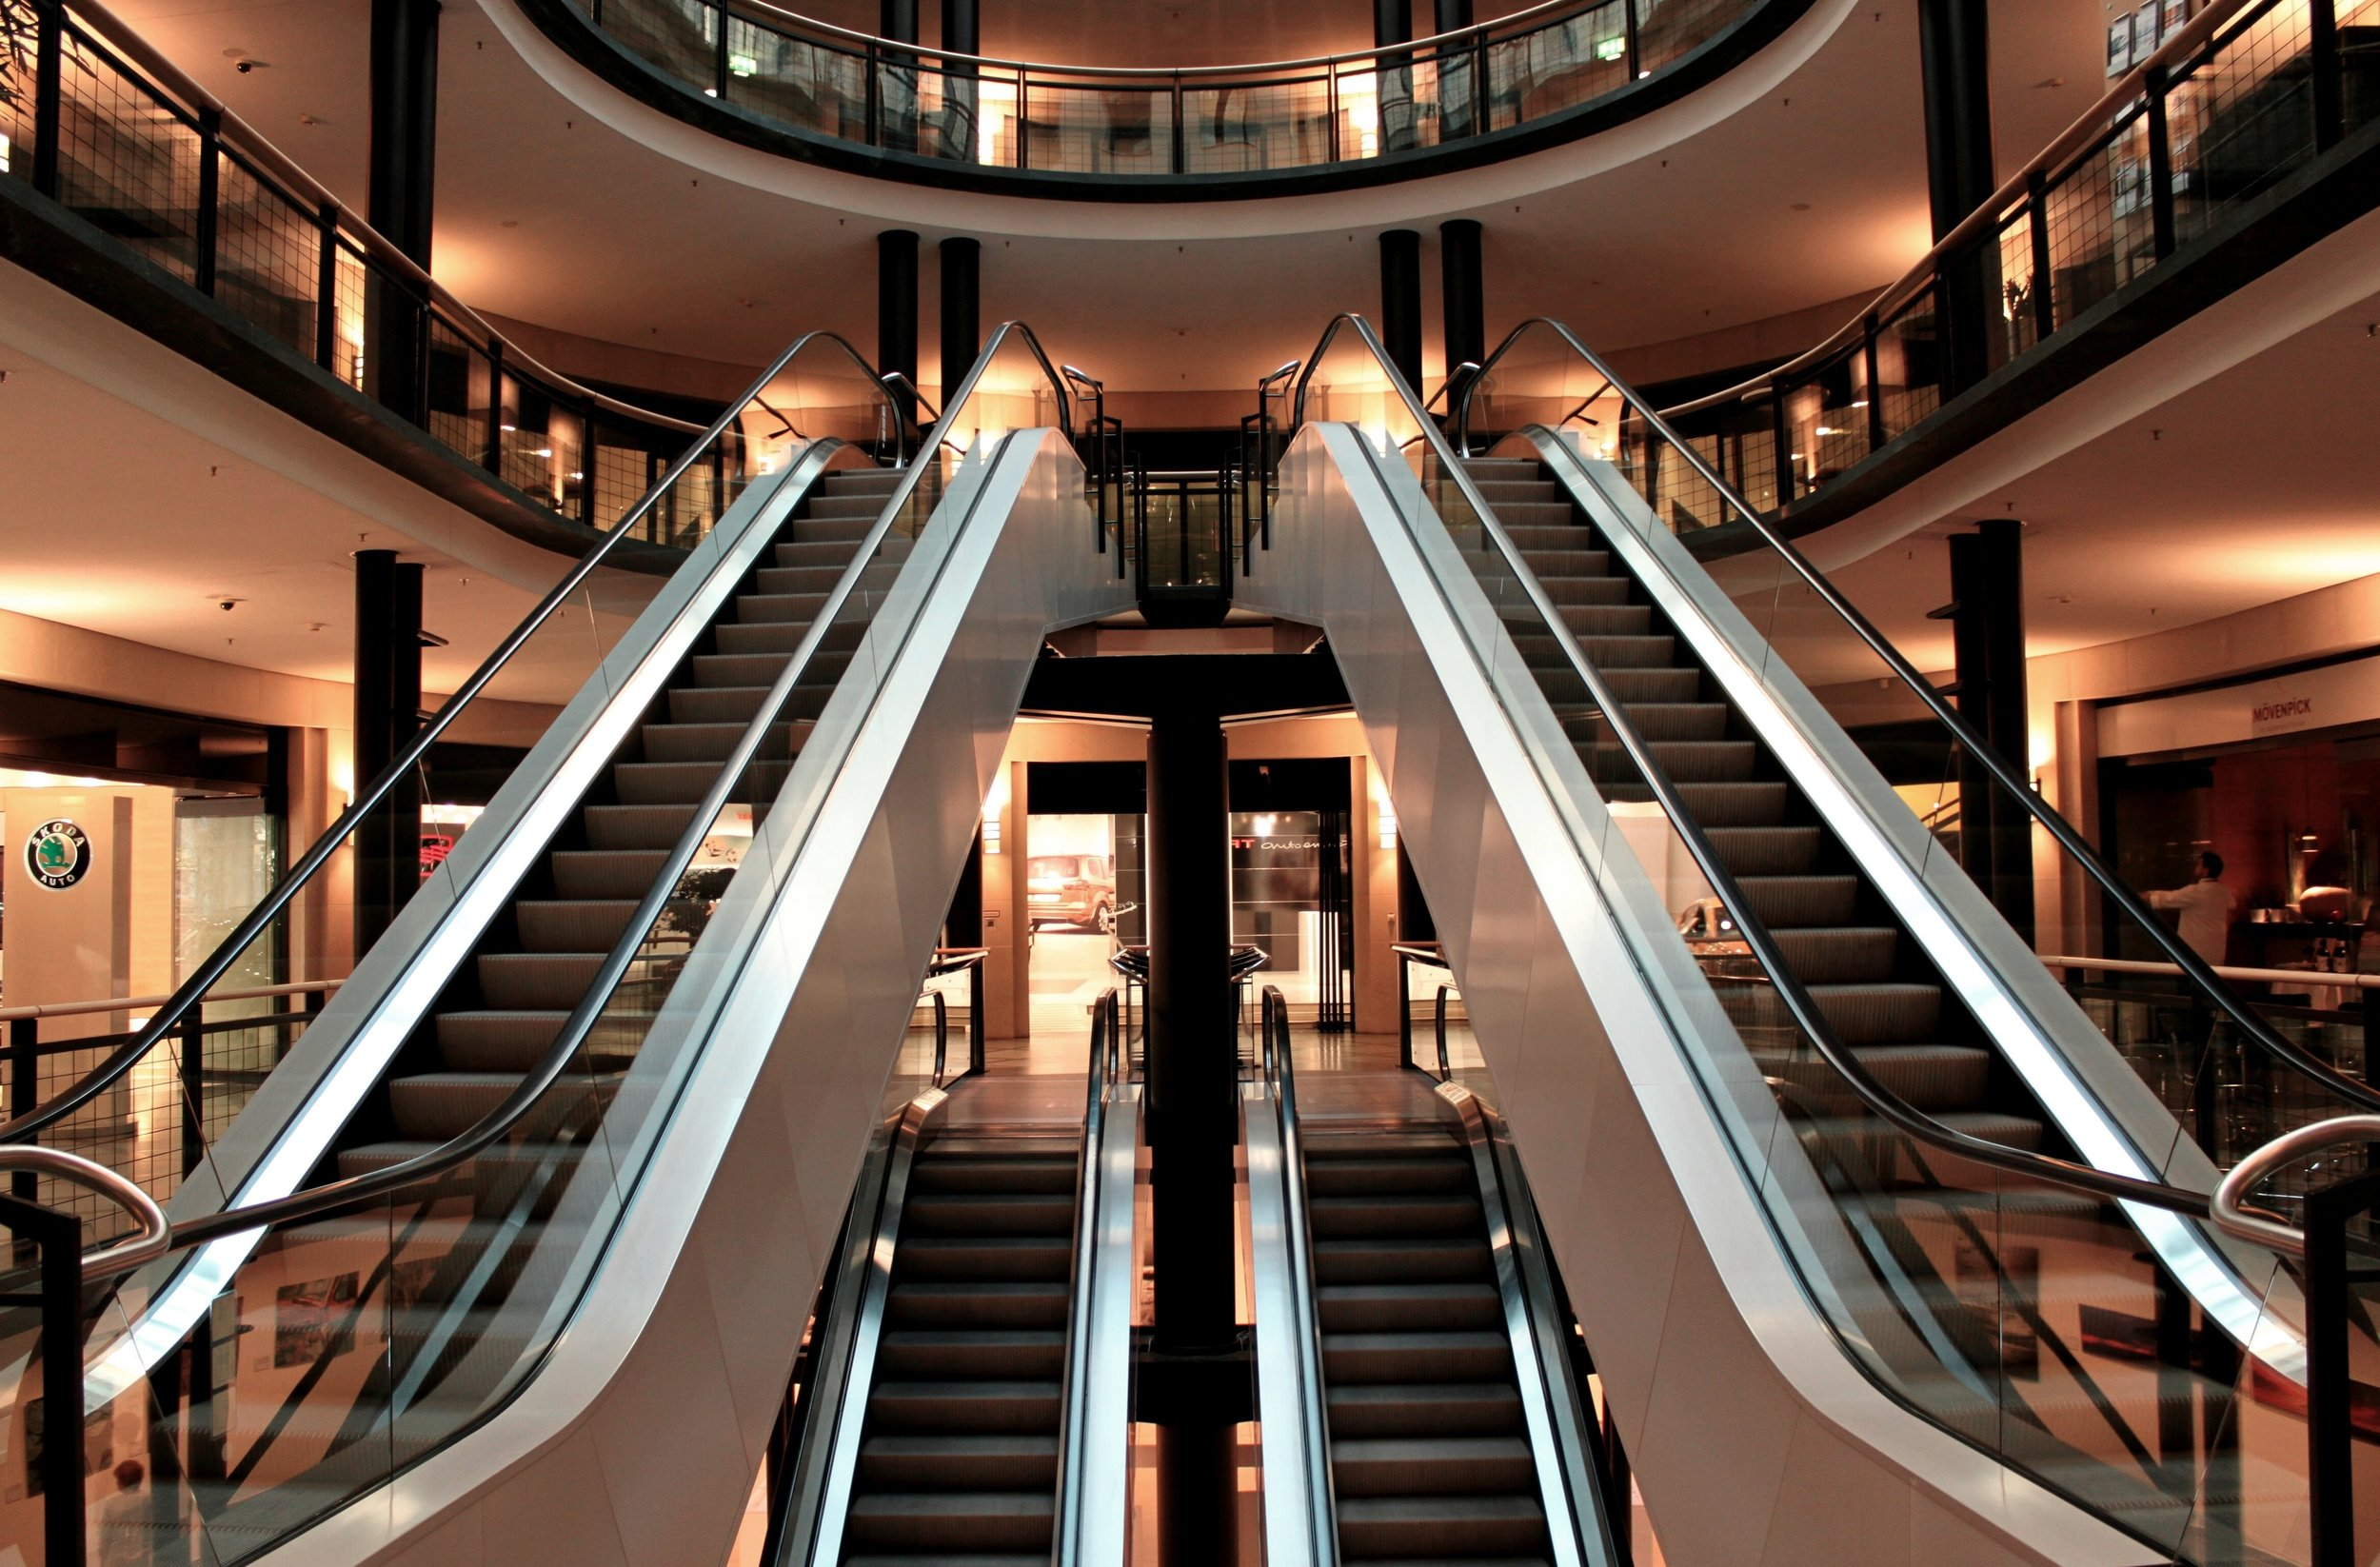 building-commercial-building-escalators-54581.jpg